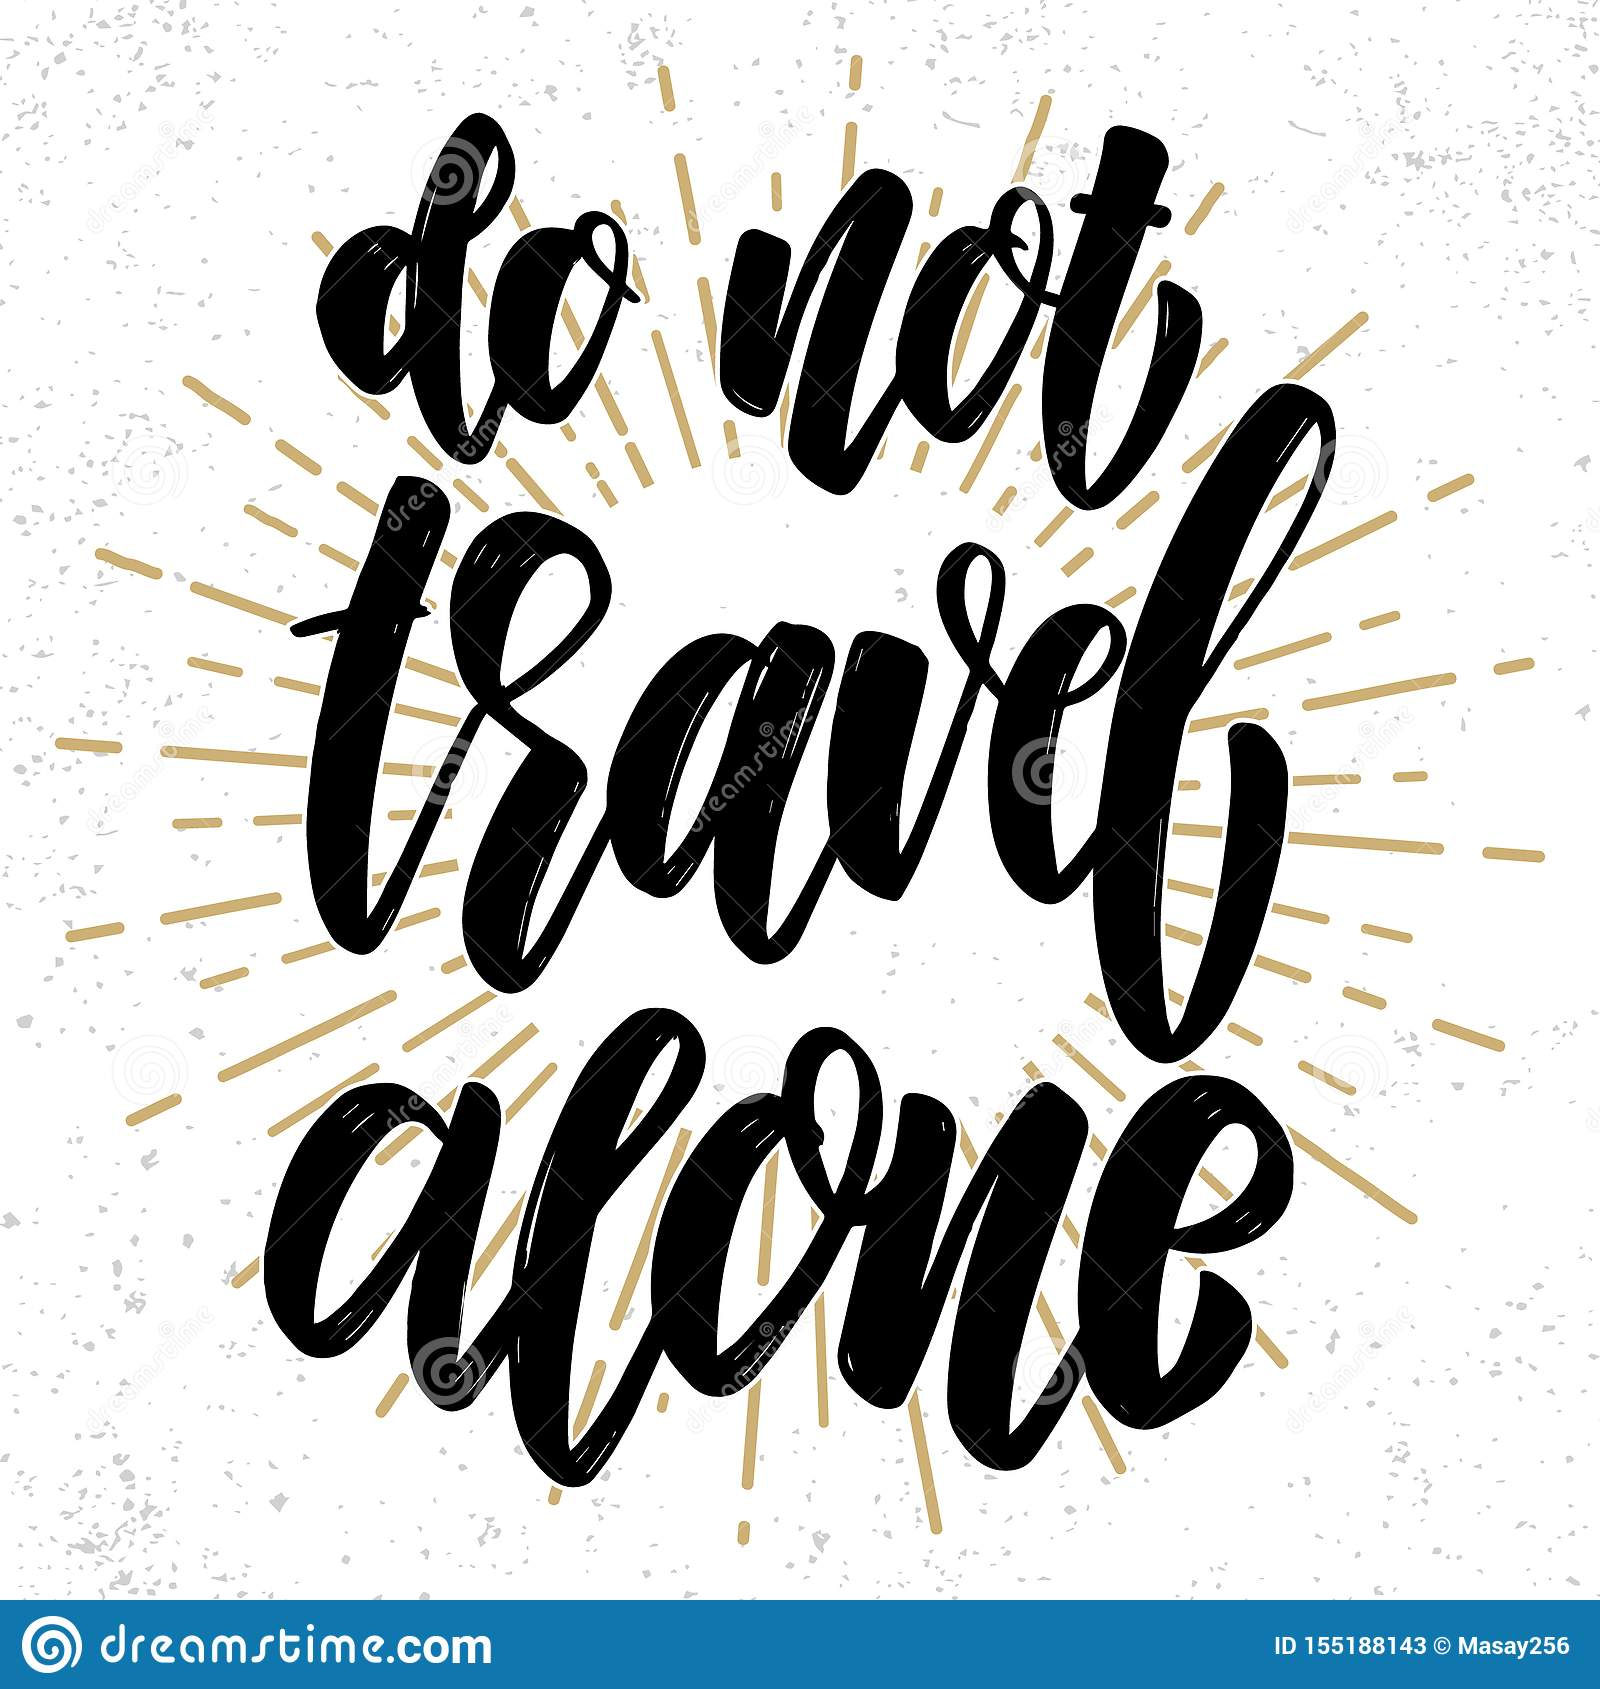 Do not travel alone. Hand drawn lettering phrase. Design element for poster, greeting card, banner.